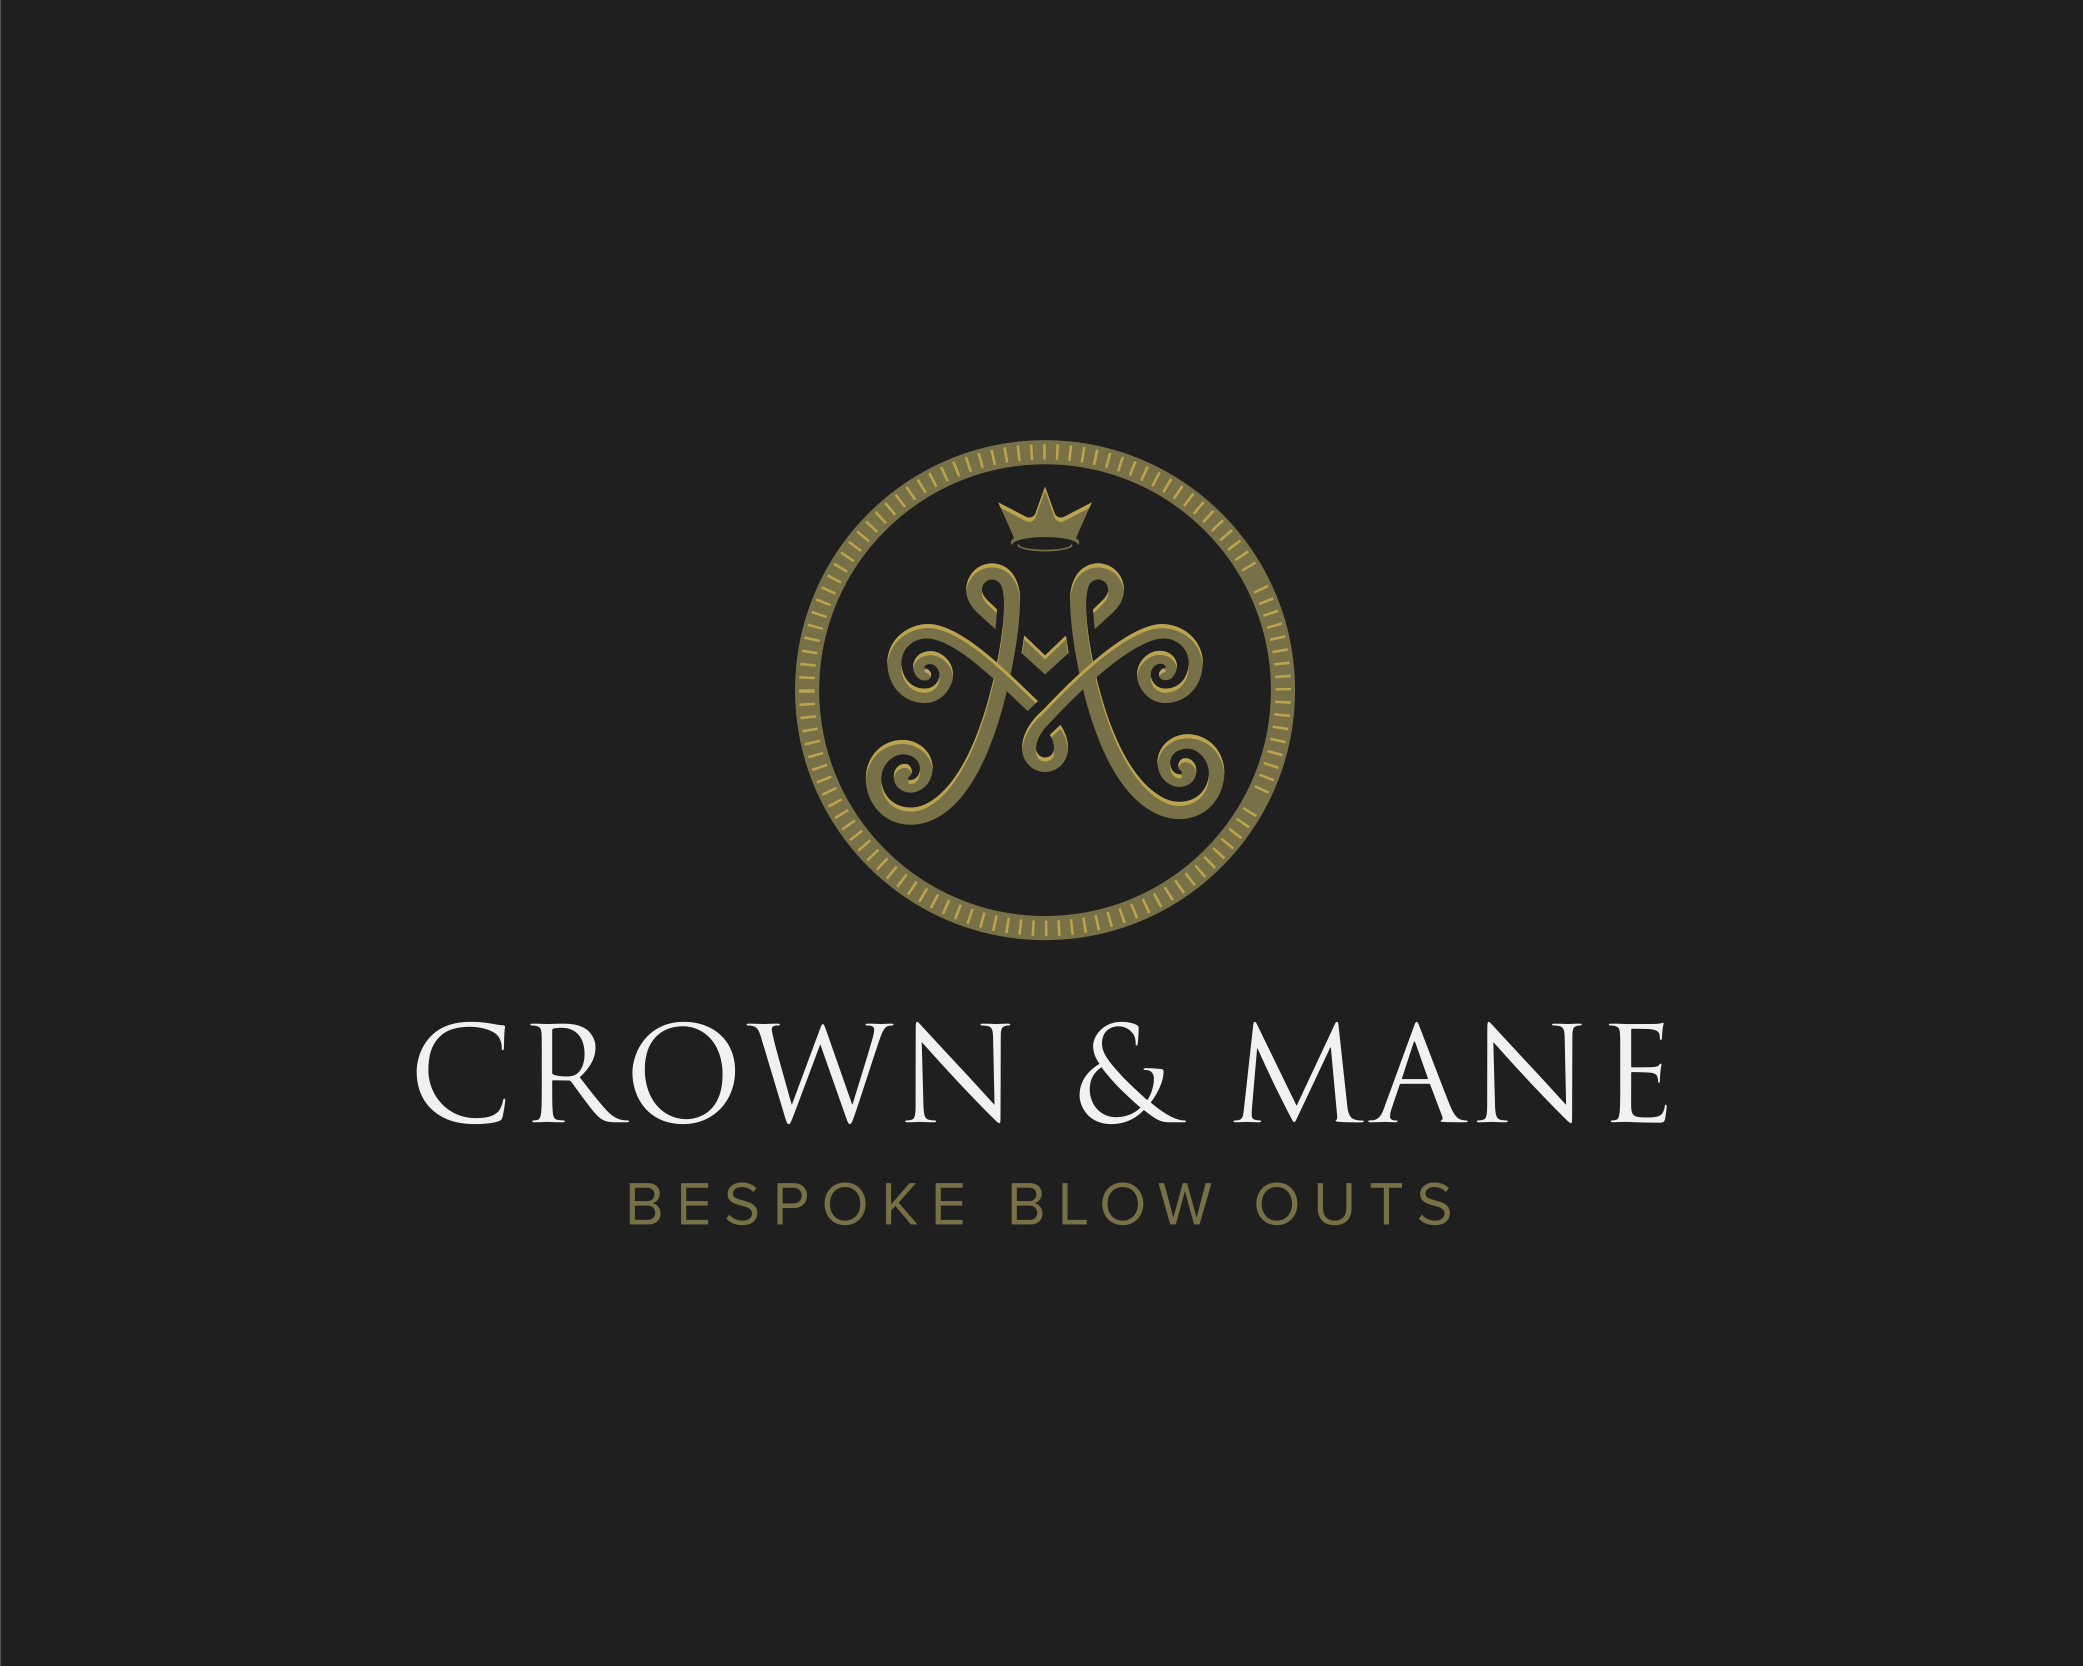 Crown and mane